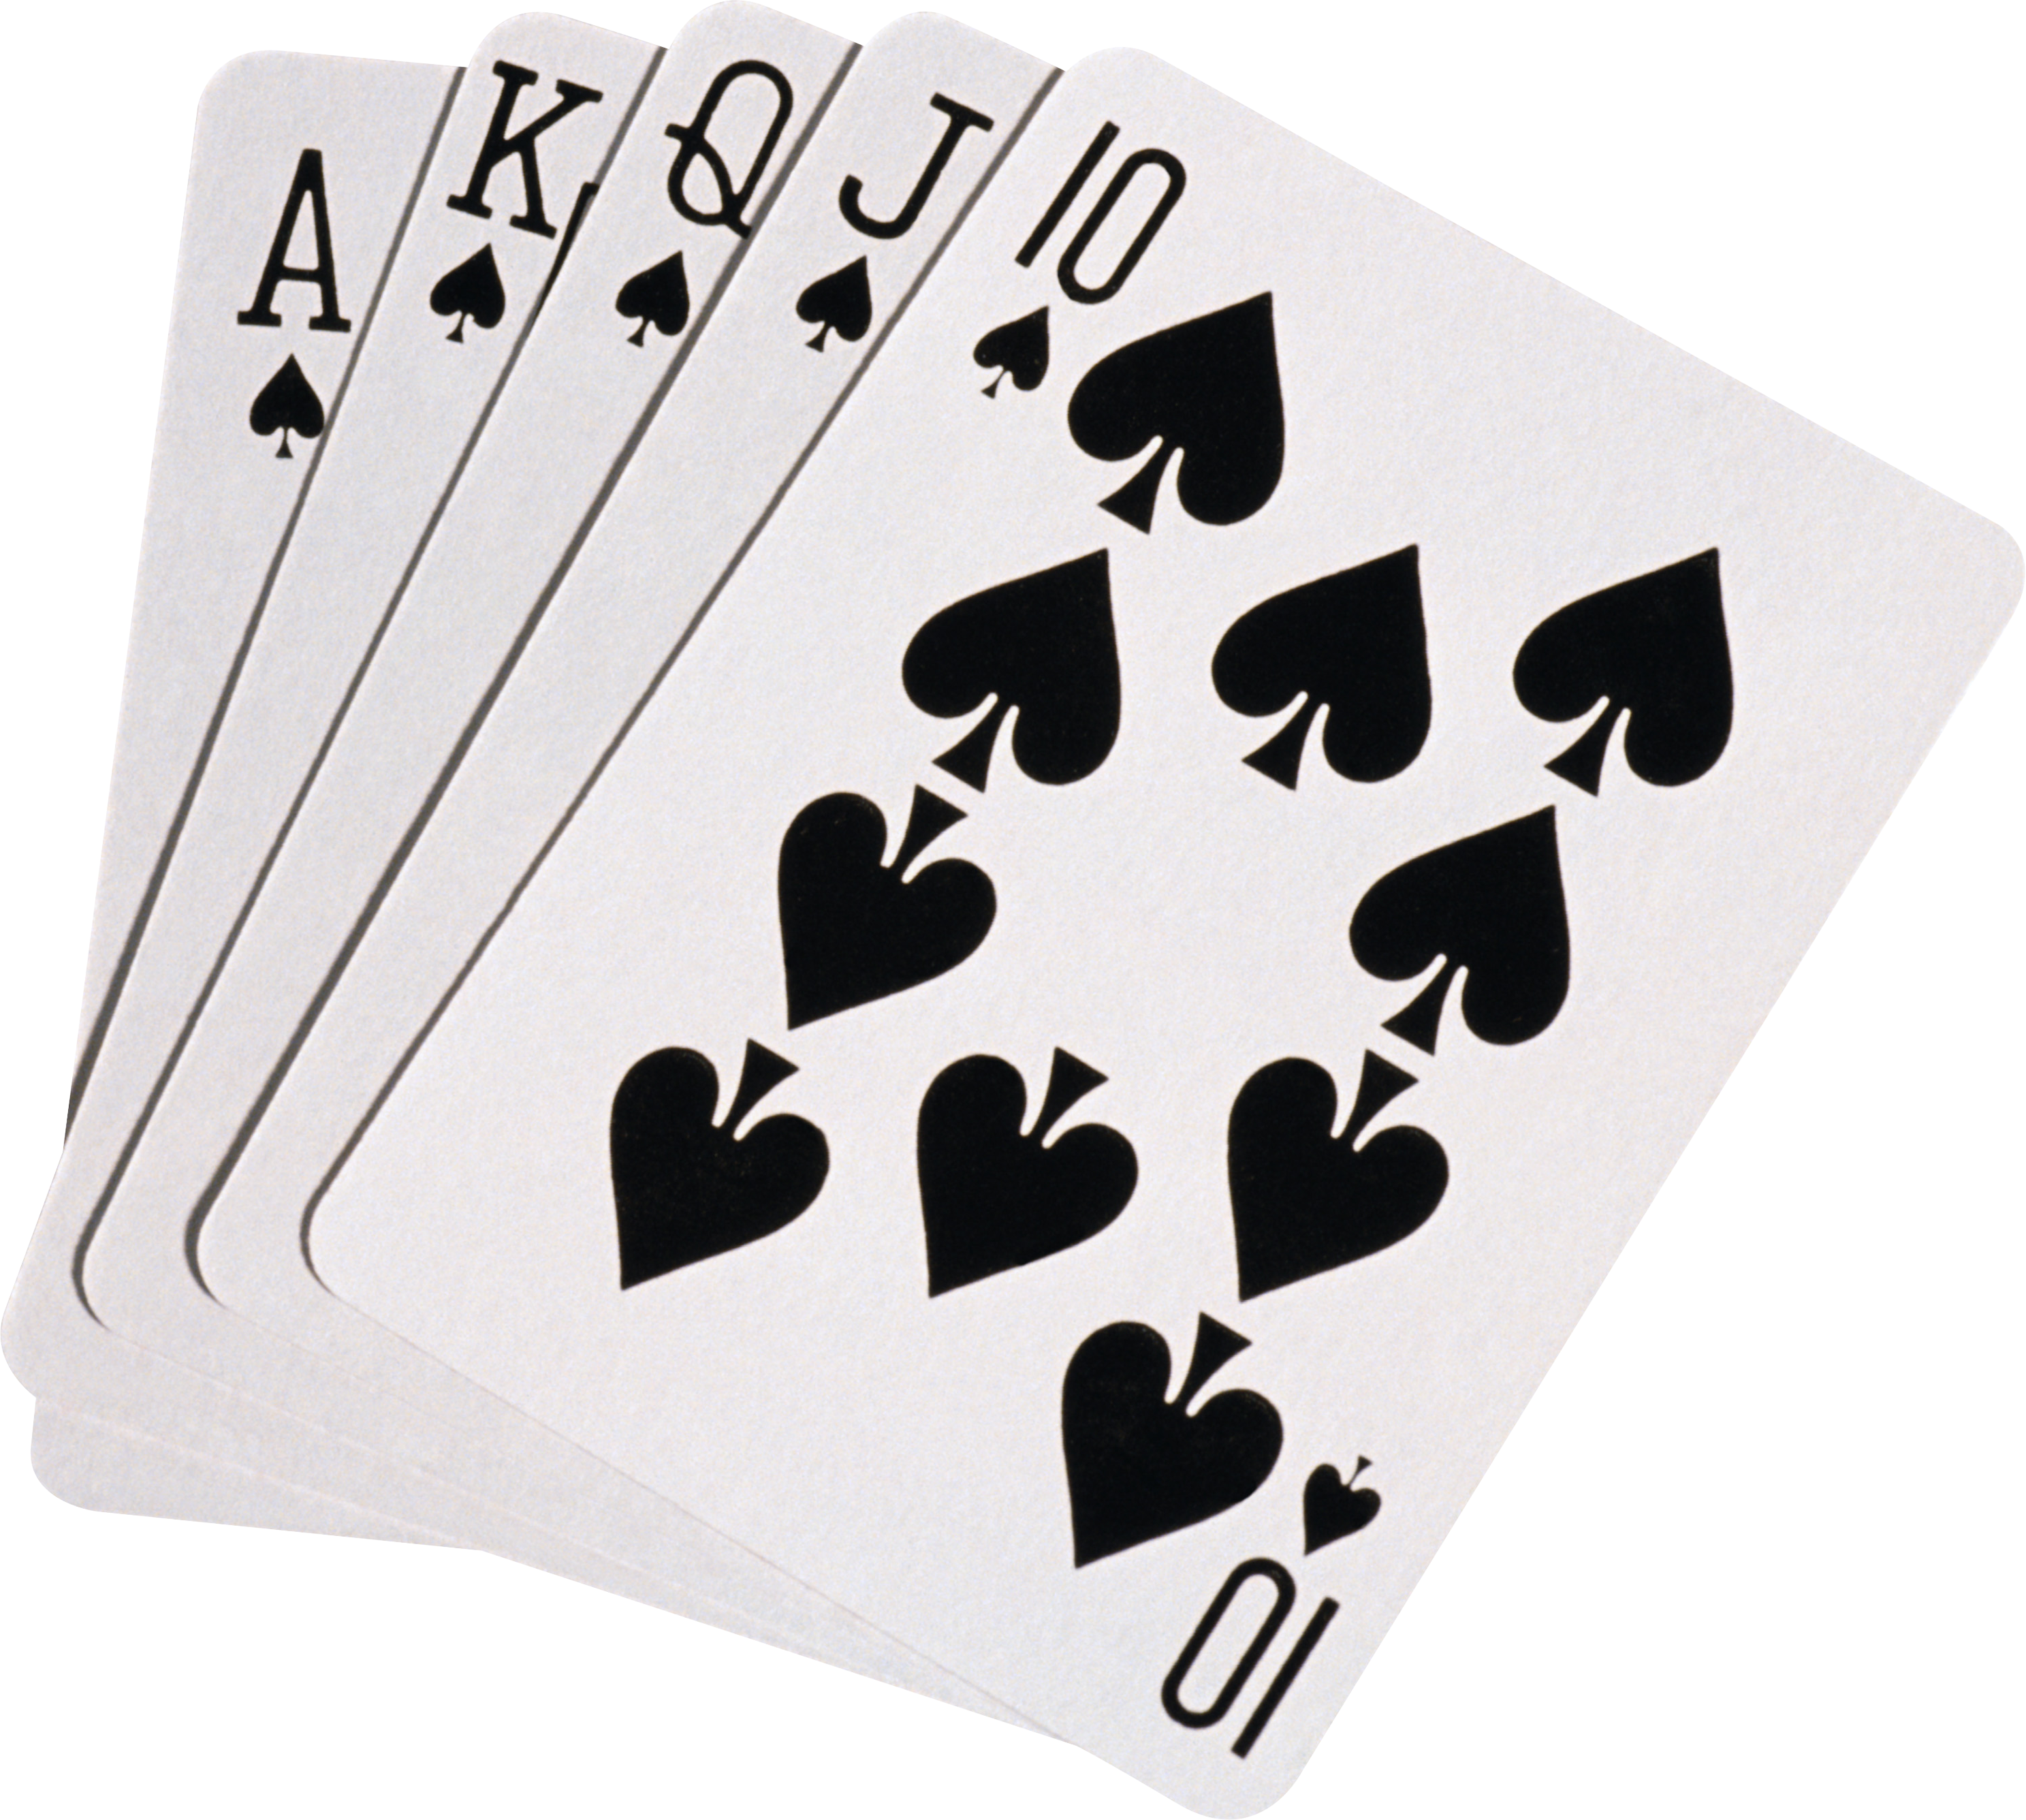 4 queen playing cards png. Transparent images pluspng